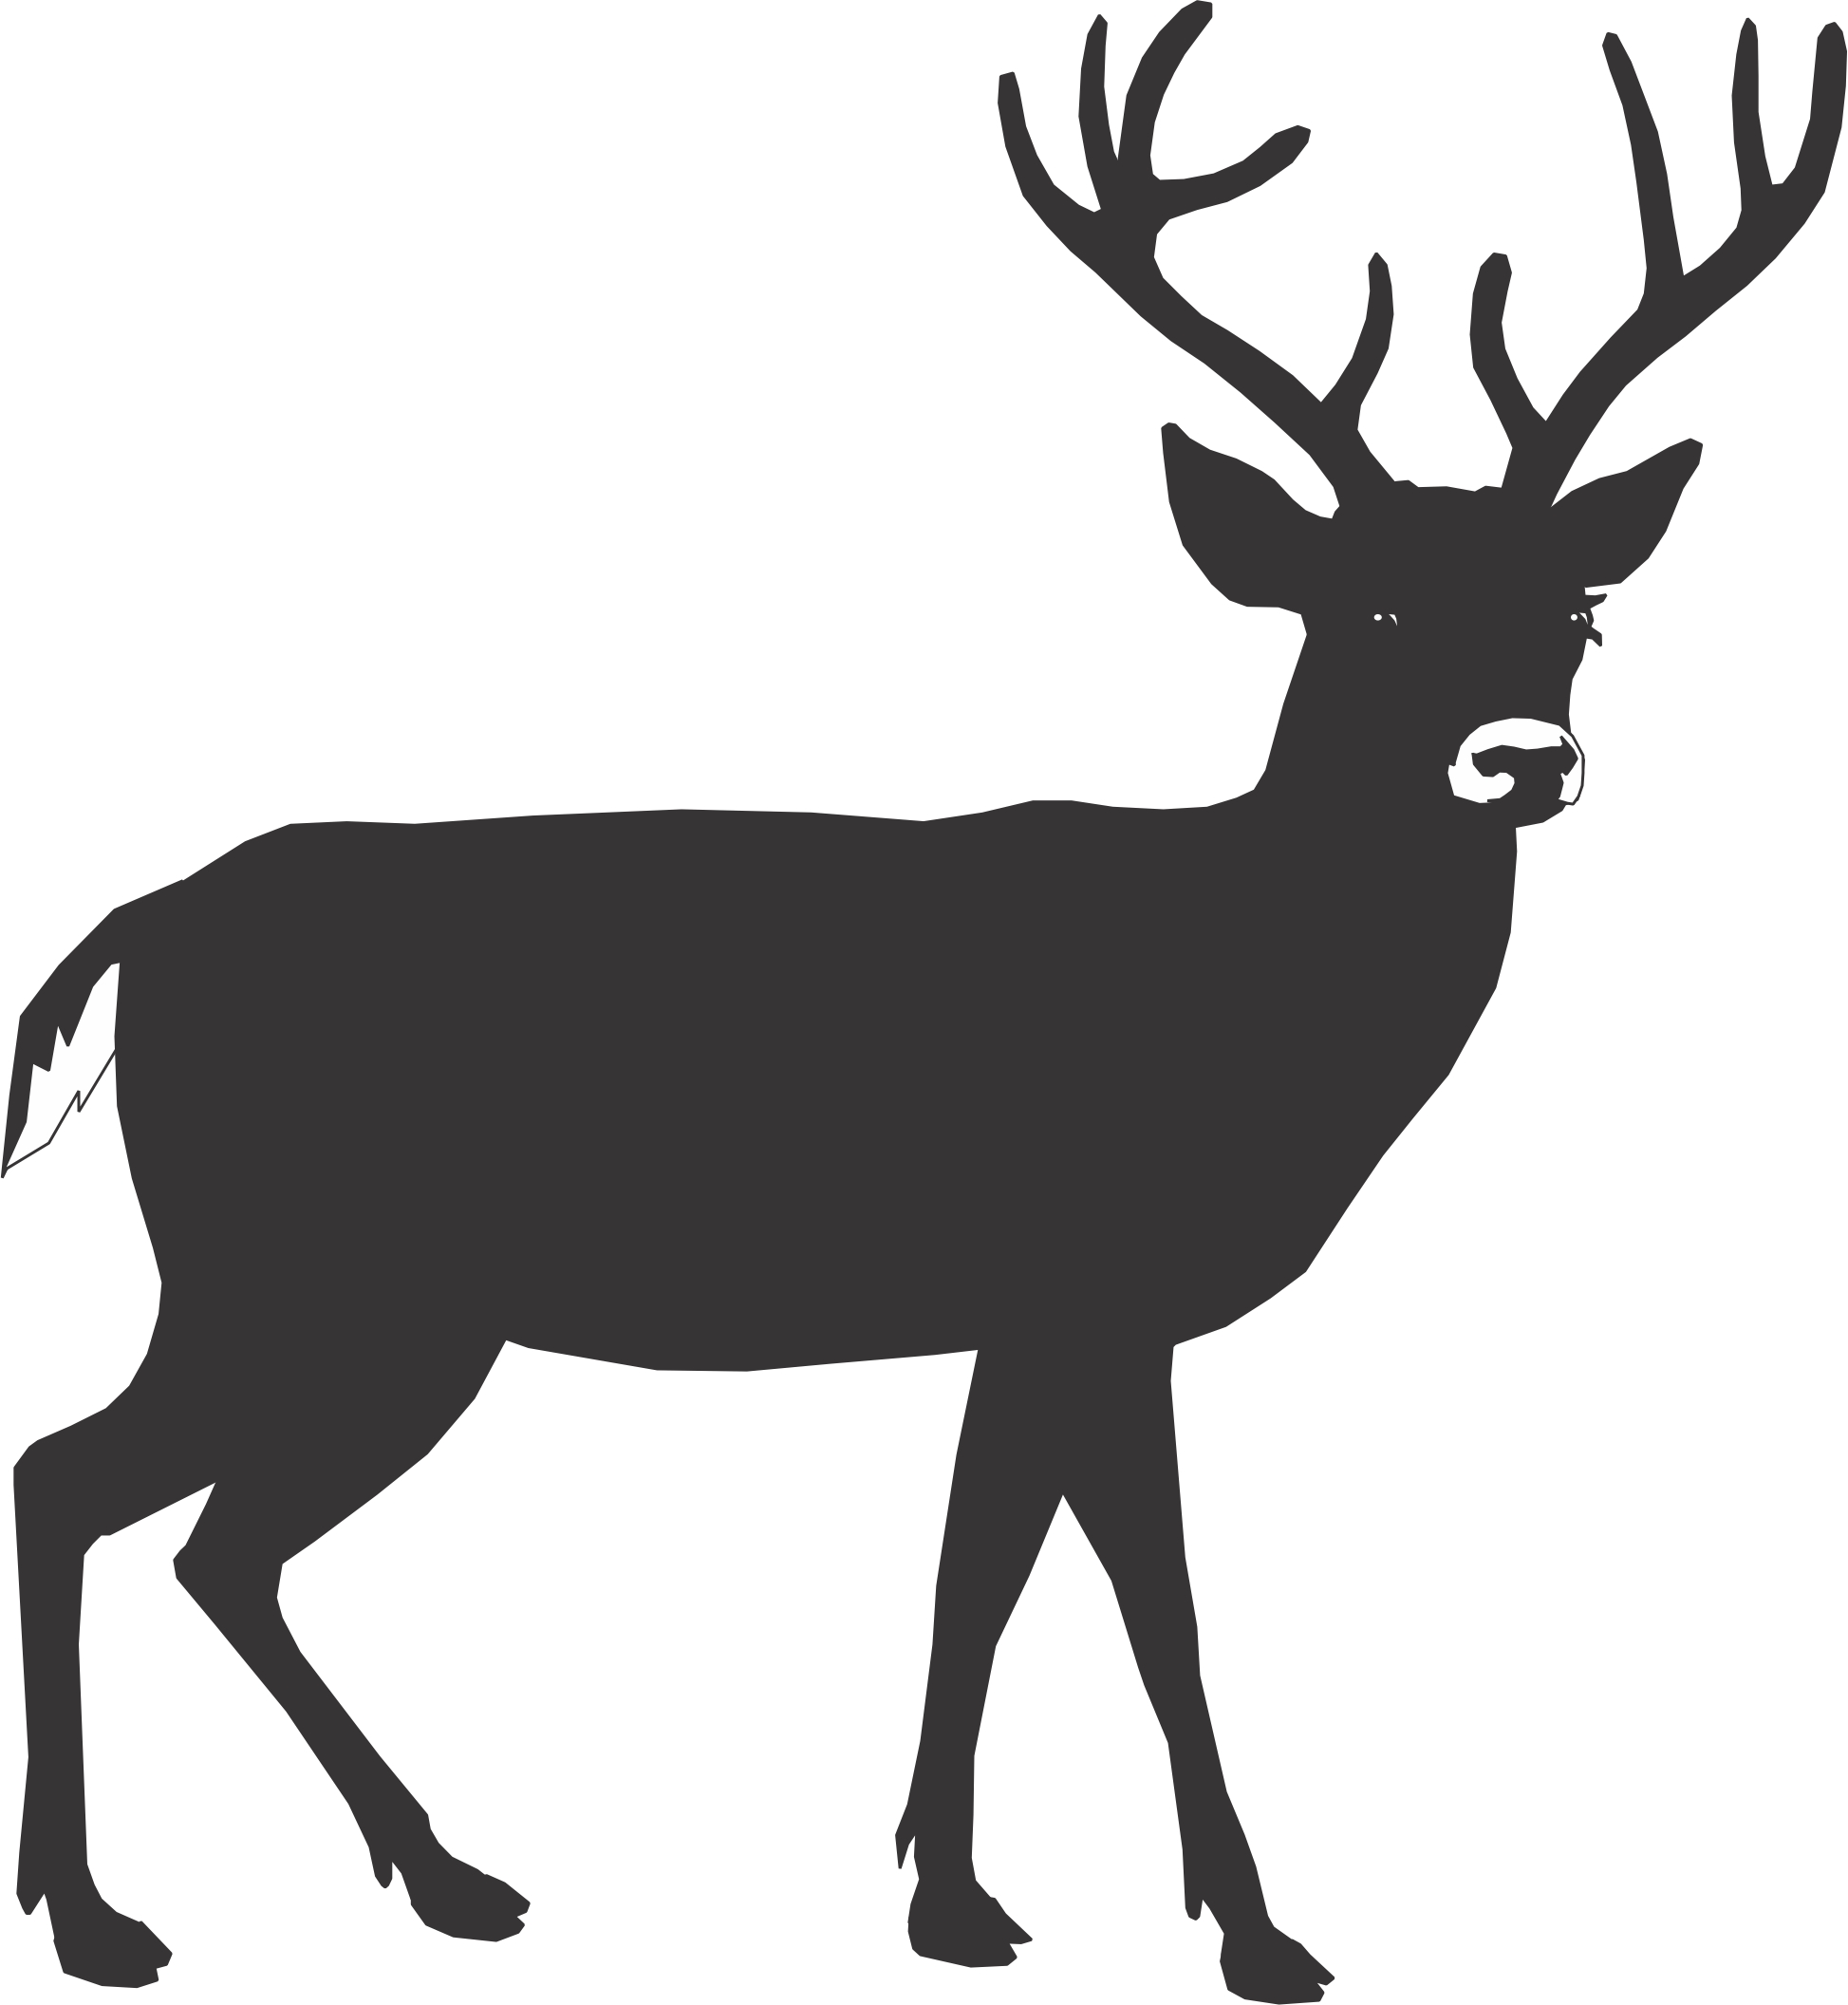 Whitetail buck silhouette clipart picture free download Elk Clipart Black And White | Free download best Elk Clipart Black ... picture free download